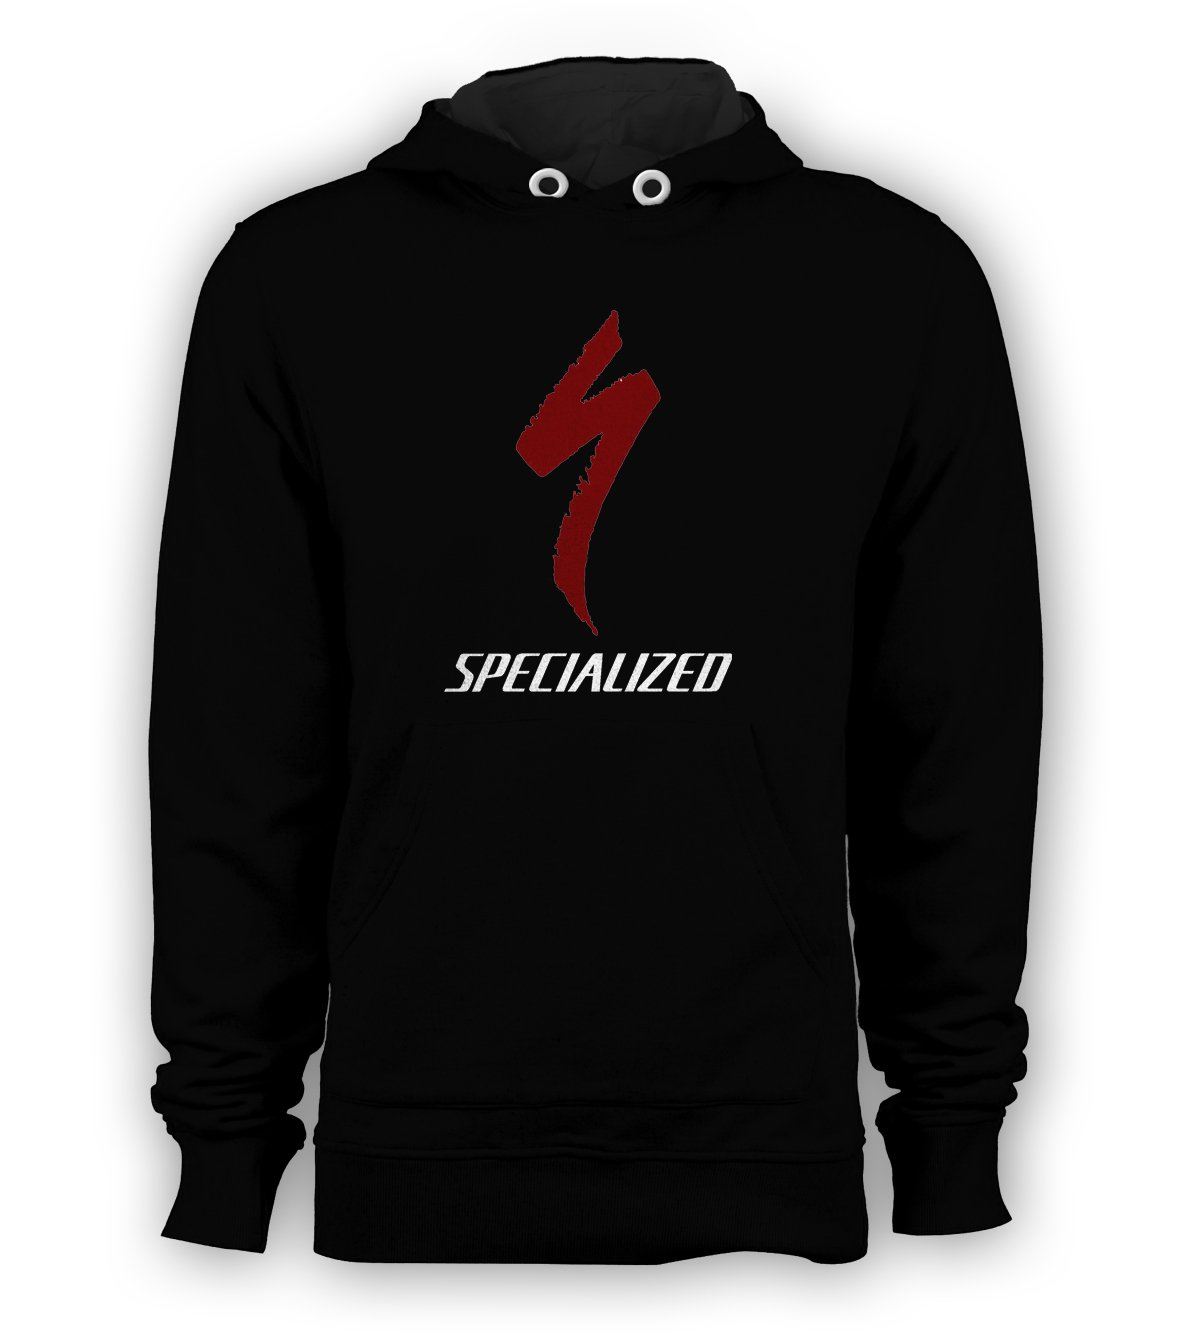 Specialized Bicycle Logo Pullover Hoodie Men Sweatshirts Size S to 3XL New Black